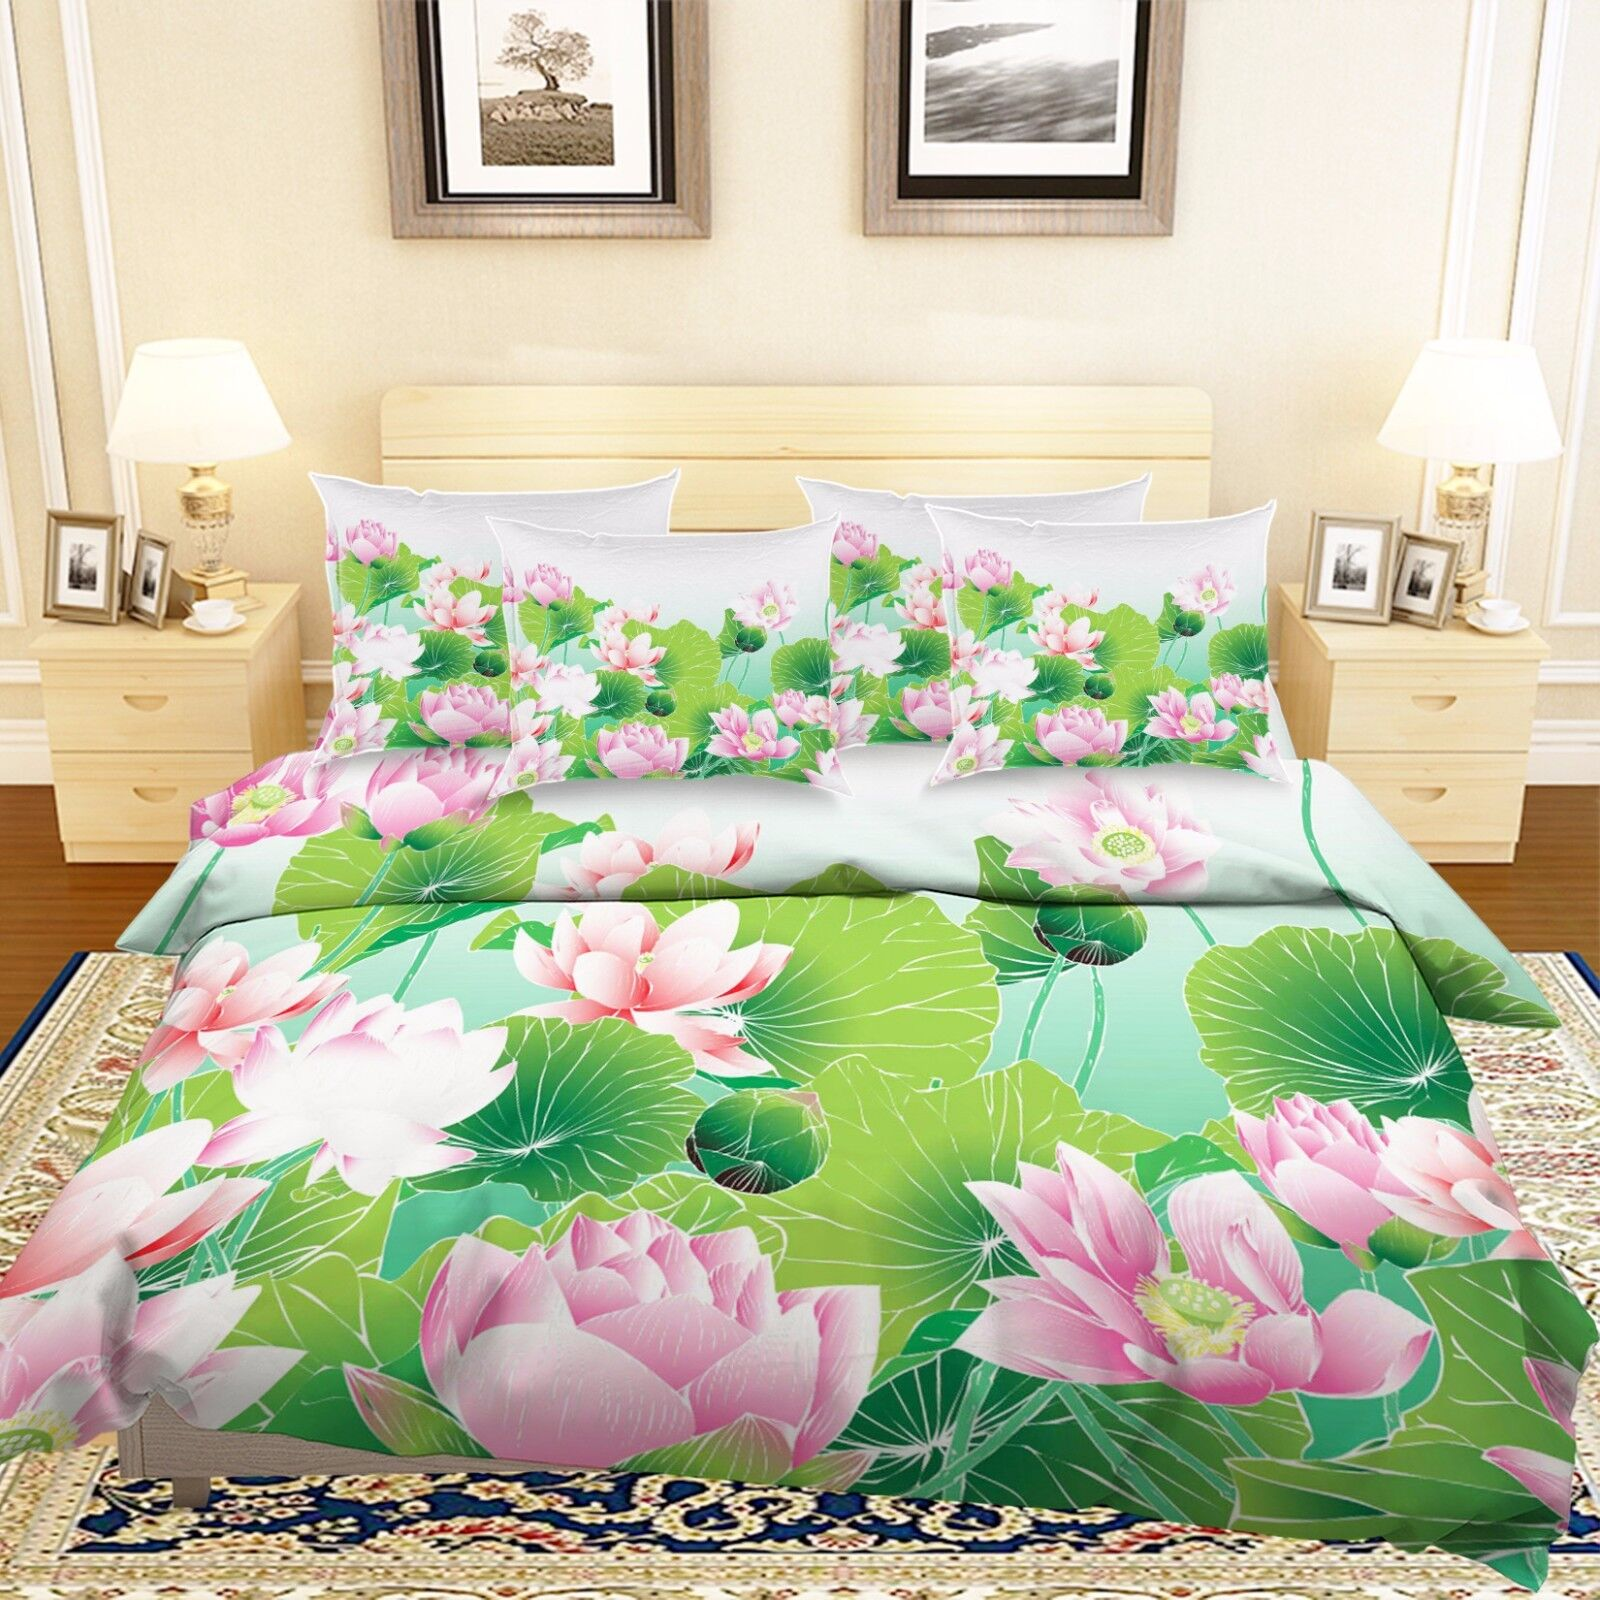 3D Pink Lotus Pond 7 Bed Pillowcases Quilt Duvet Cover Set Single Queen AU Lemon